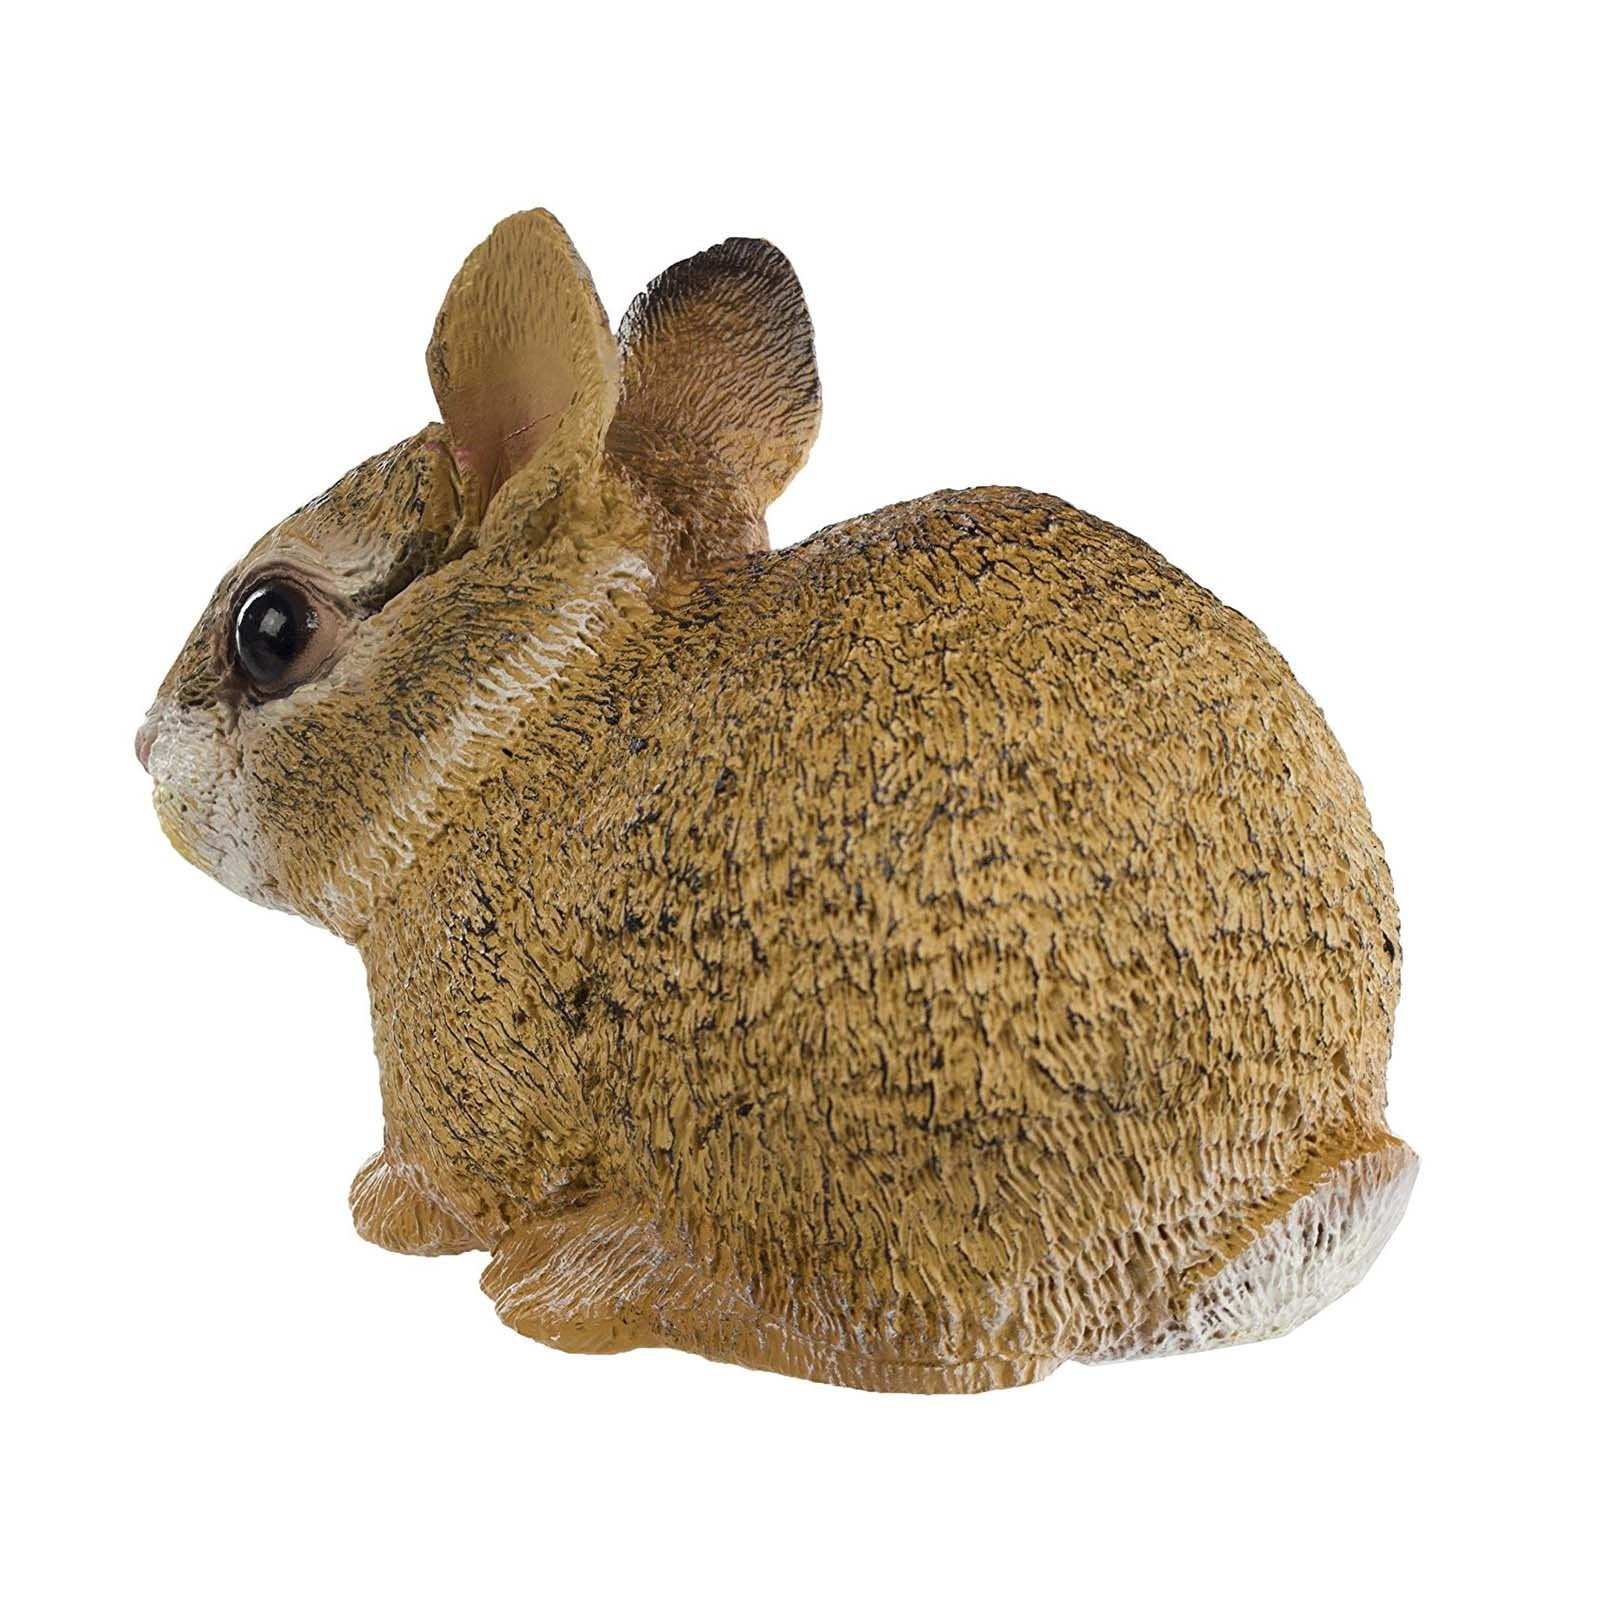 Eastern Cottontail Rabbit Baby Incredible Creatures Animal Figure Safari Ltd